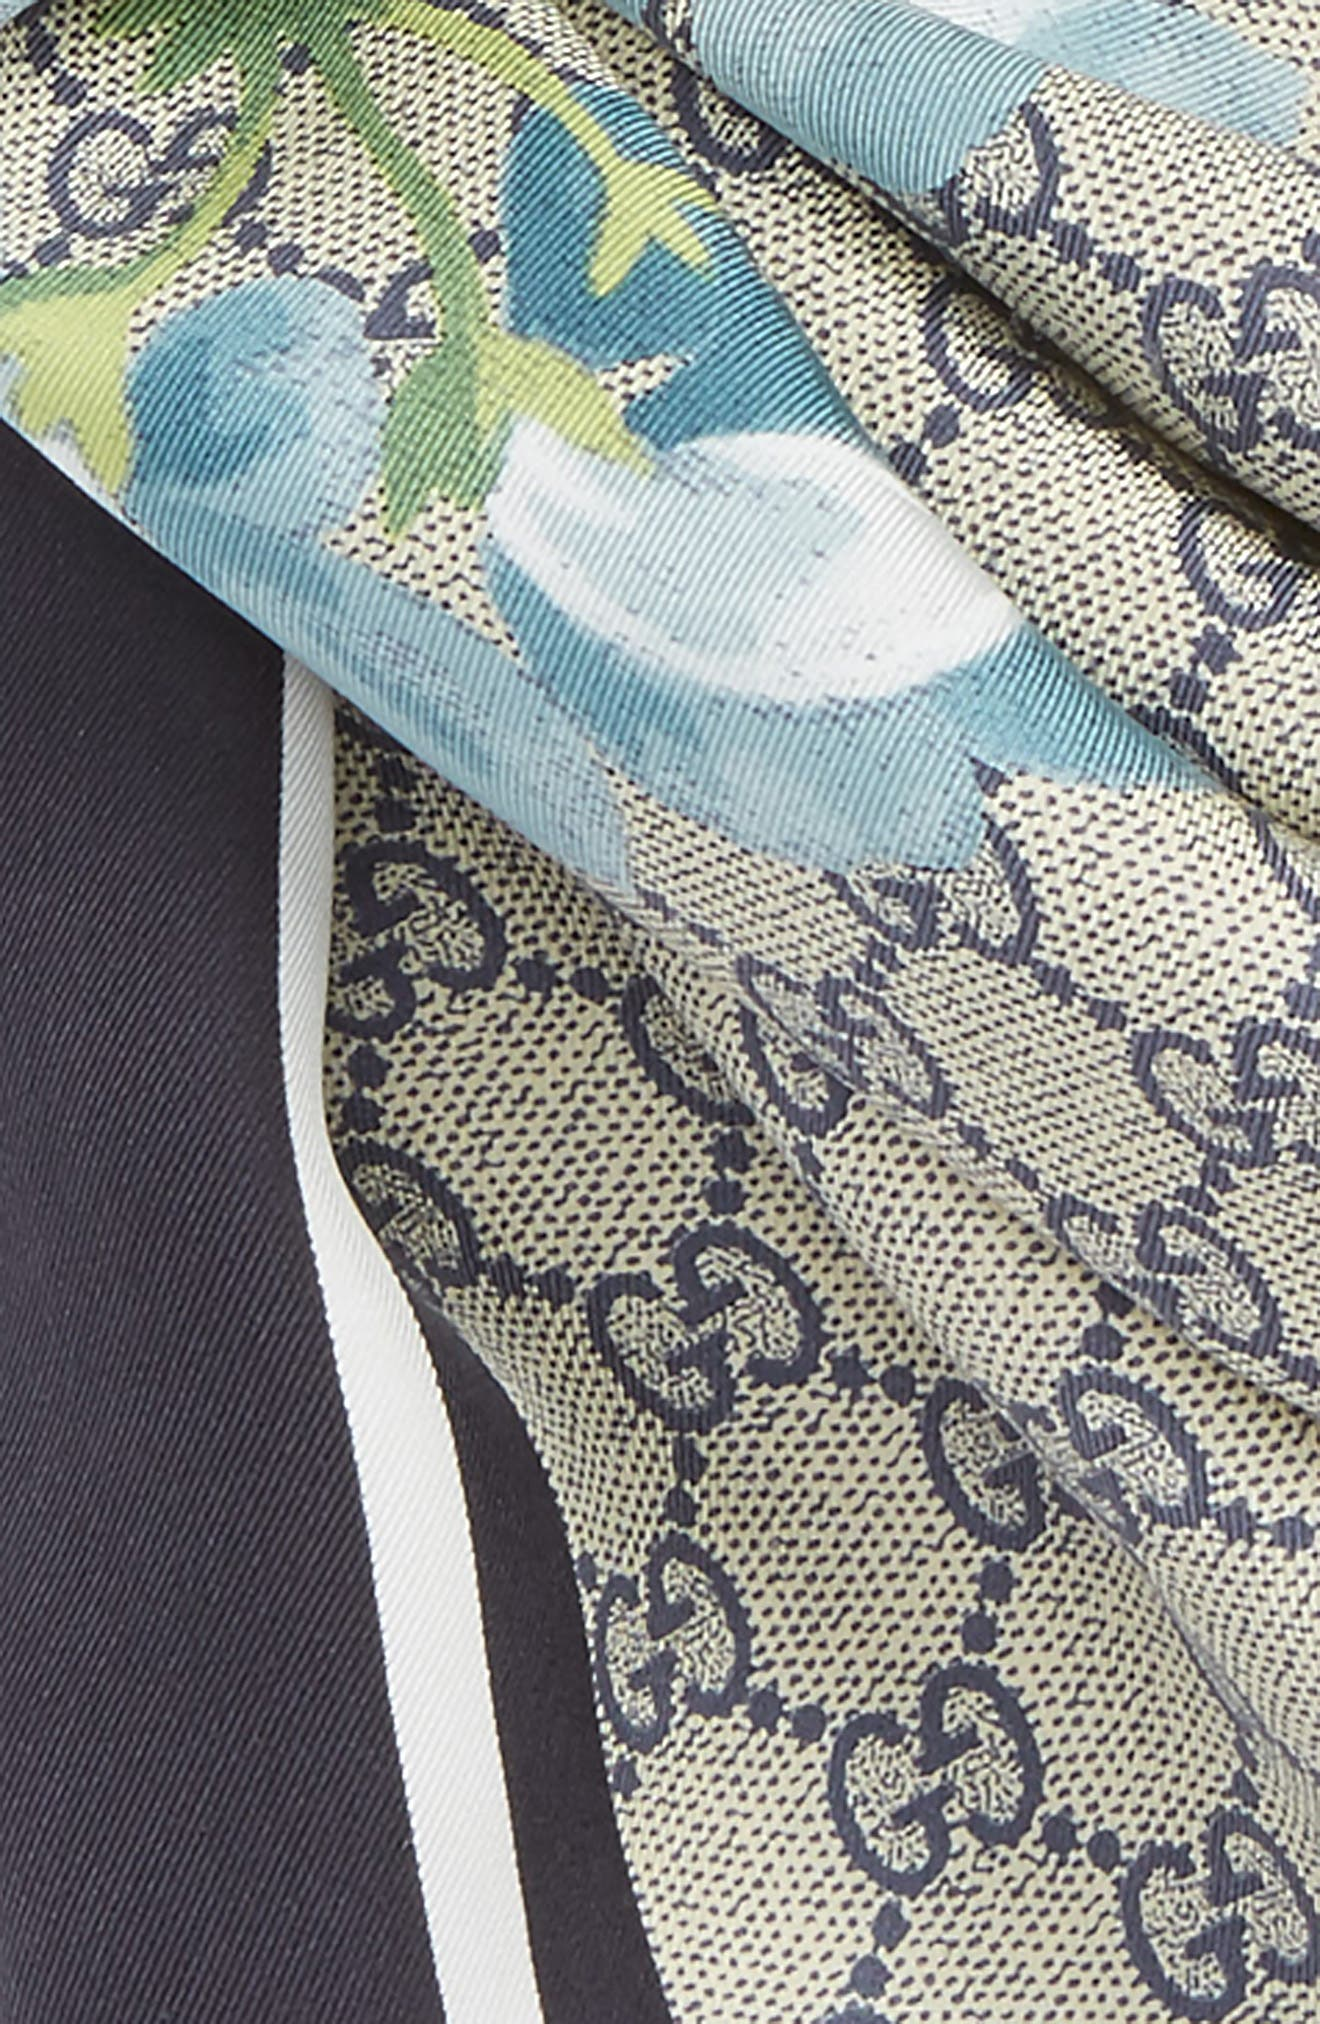 GUCCI,                             GG Blooms Foulard Scarf,                             Alternate thumbnail 3, color,                             400